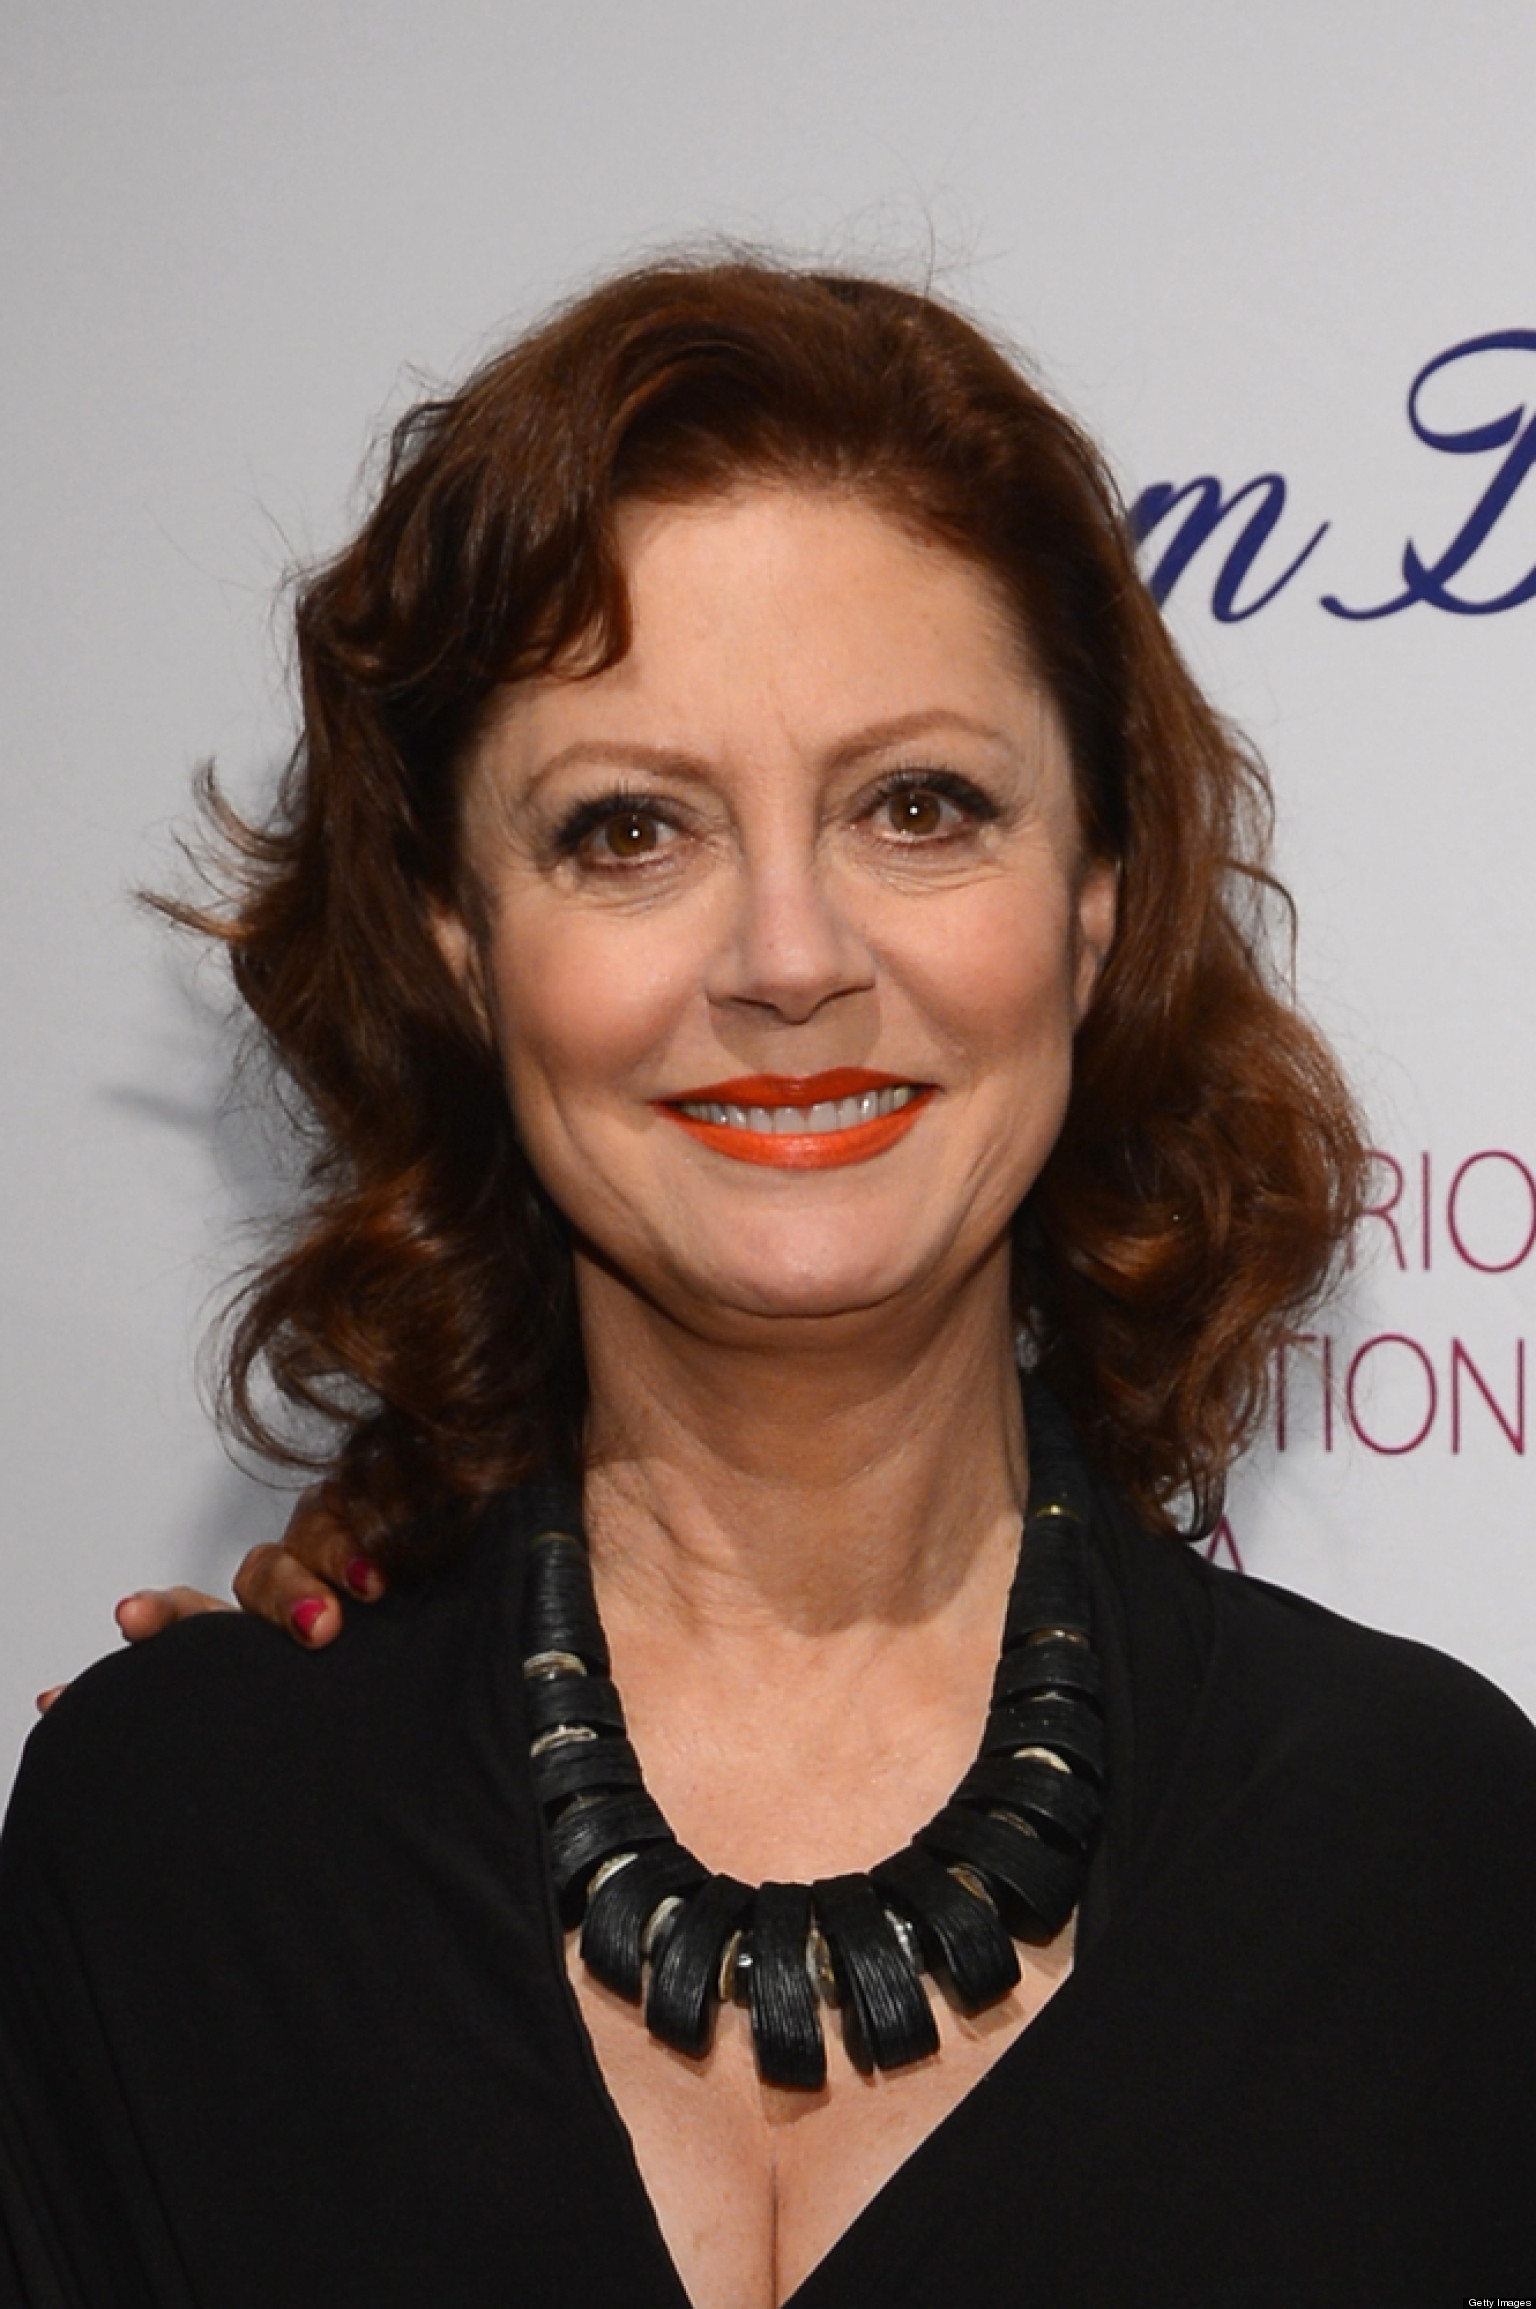 susan sarandon: married life is difficult | huffpost